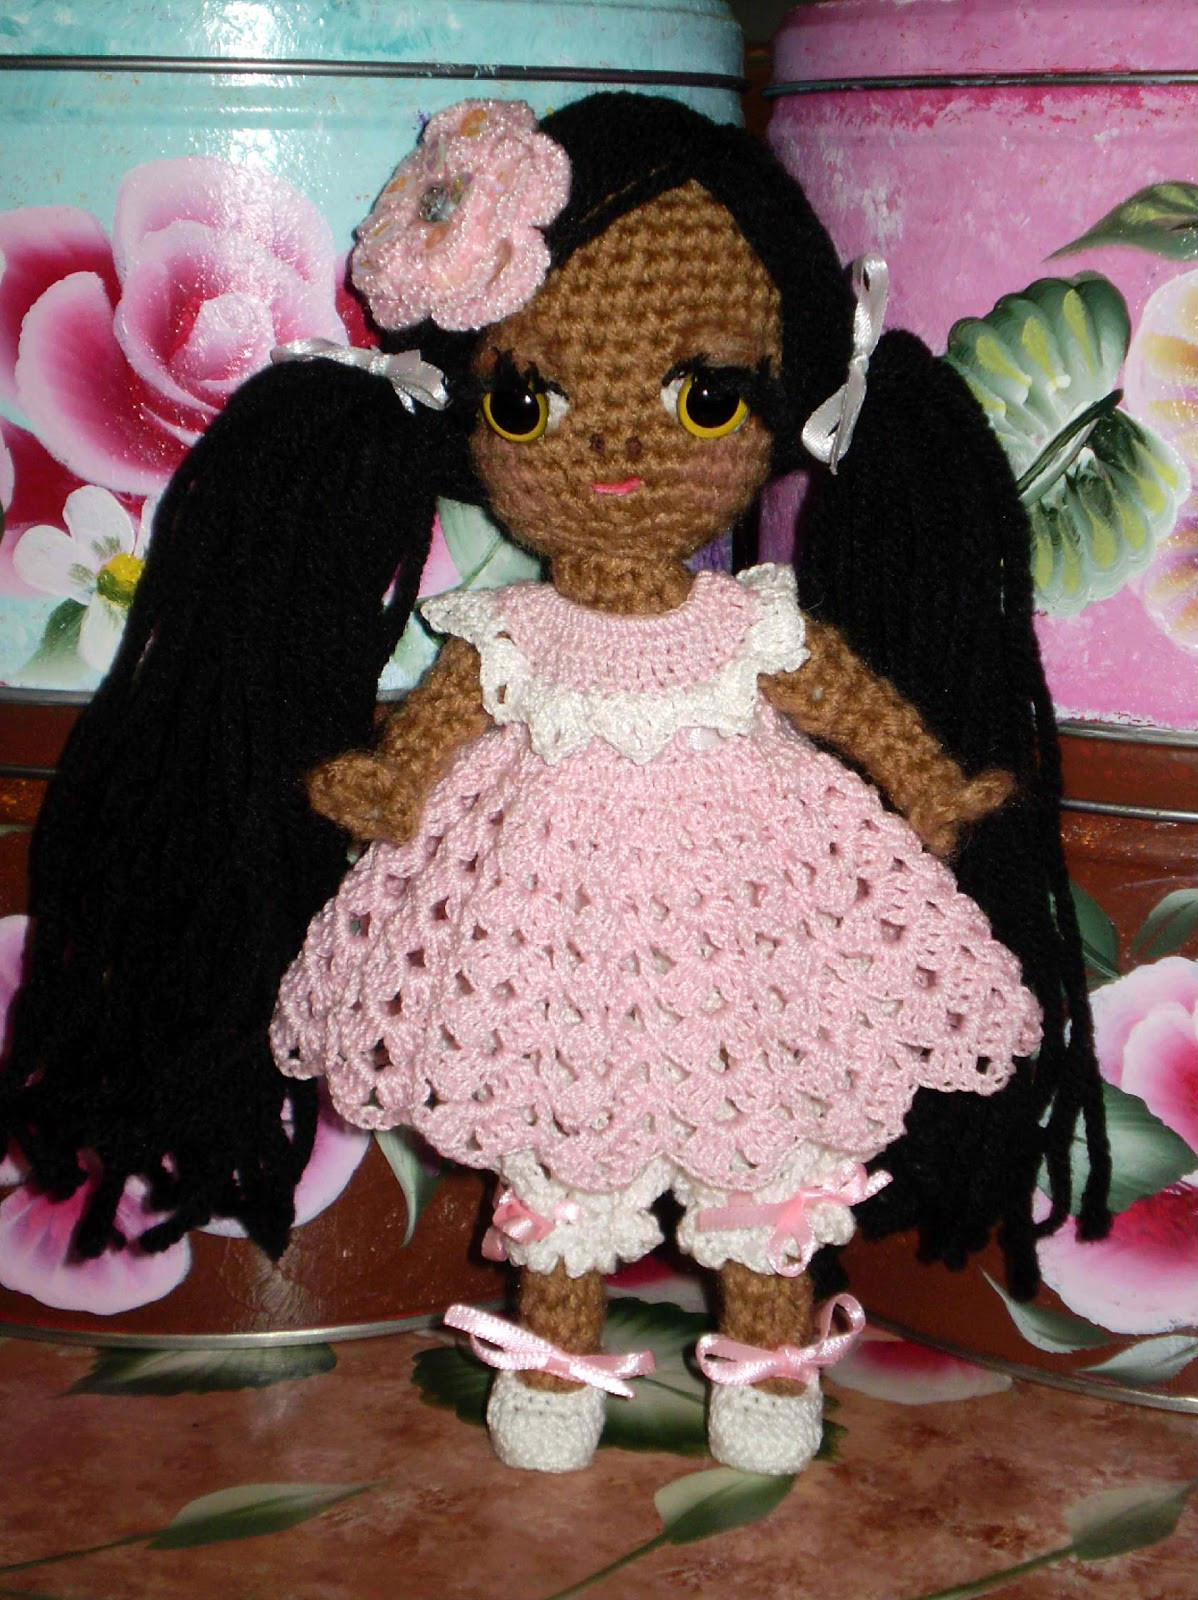 Crochet Doll Awesome Free Crochet Pattern for Doll Carrier Crochet and Of Delightful 47 Pictures Crochet Doll